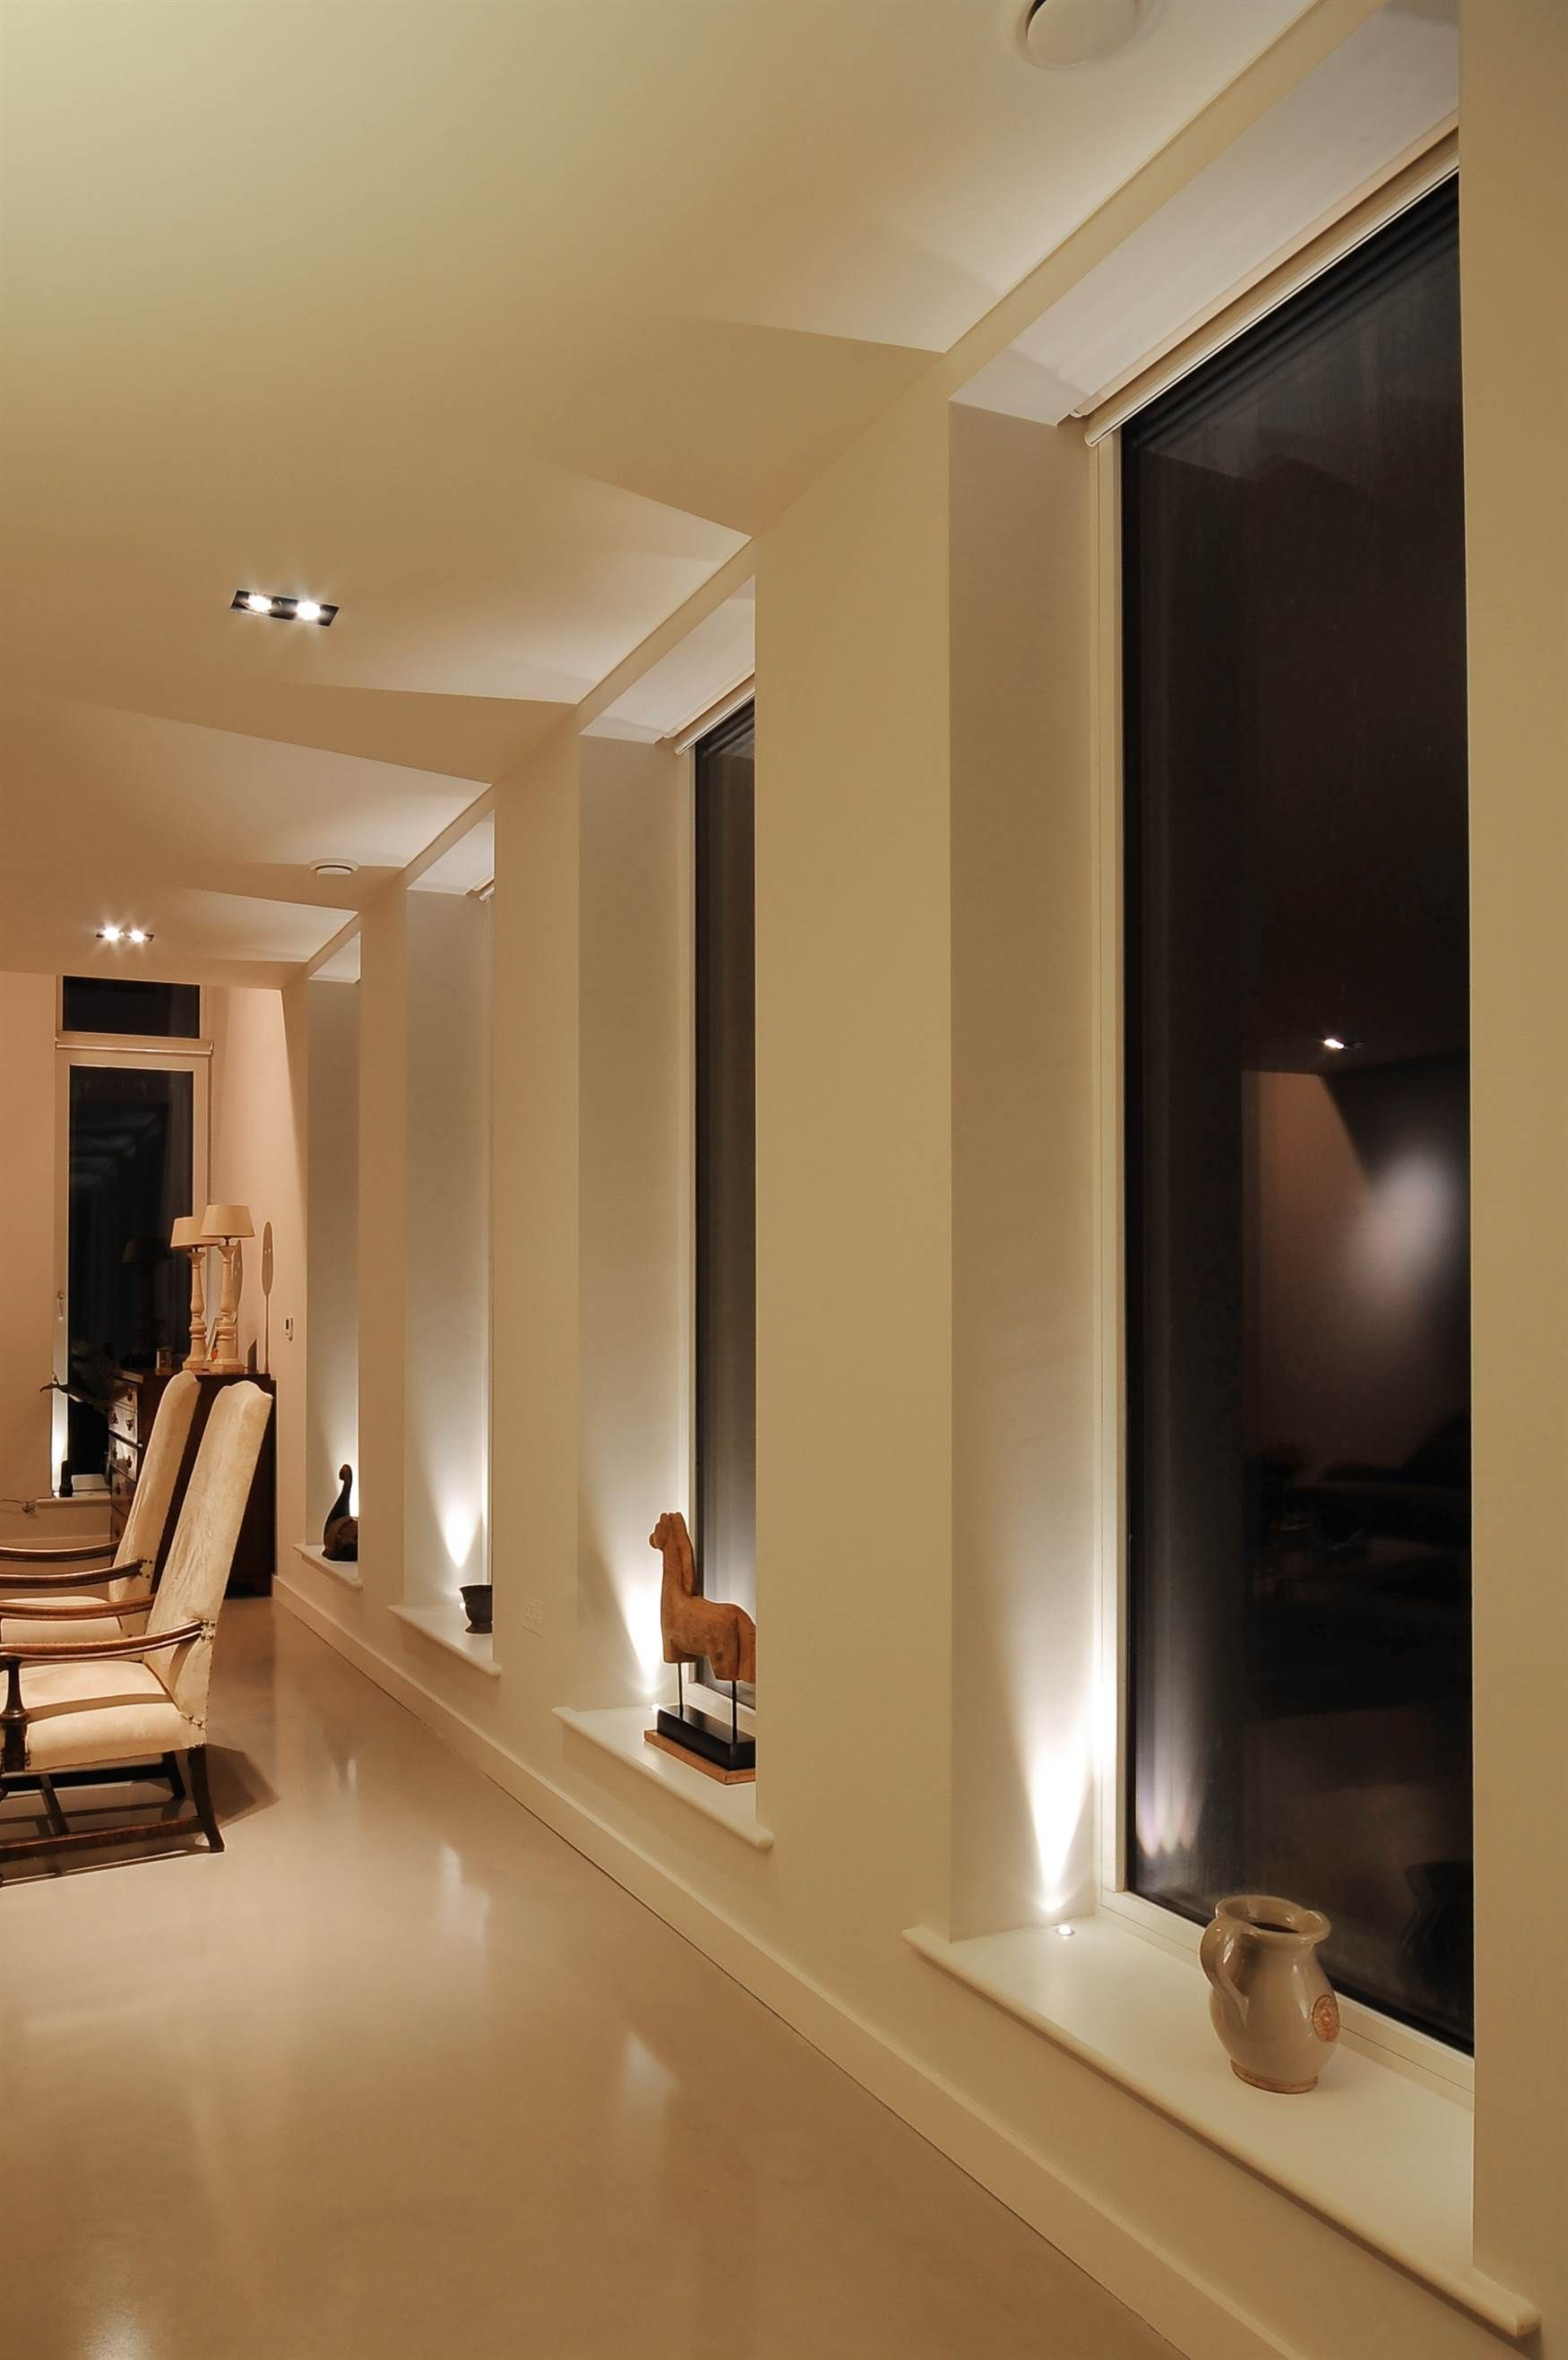 Living room lighting design mr resistor uplights in window sills mr resistor lighting aloadofball Gallery